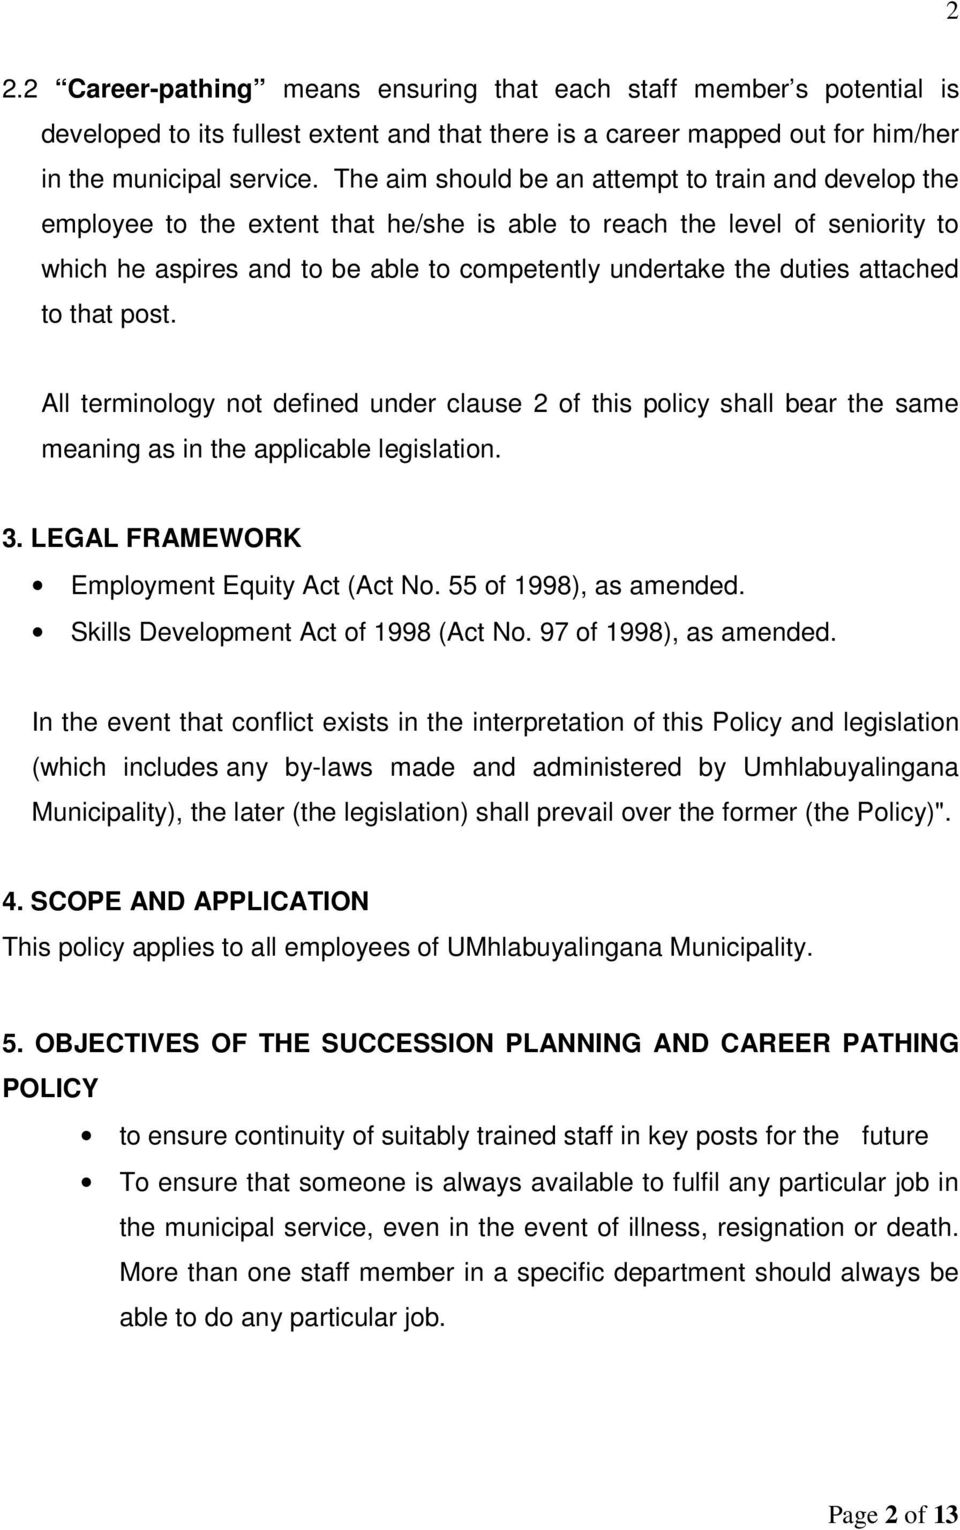 attached to that post. All terminology not defined under clause 2 of this policy shall bear the same meaning as in the applicable legislation. 3. LEGAL FRAMEWORK Employment Equity Act (Act No.